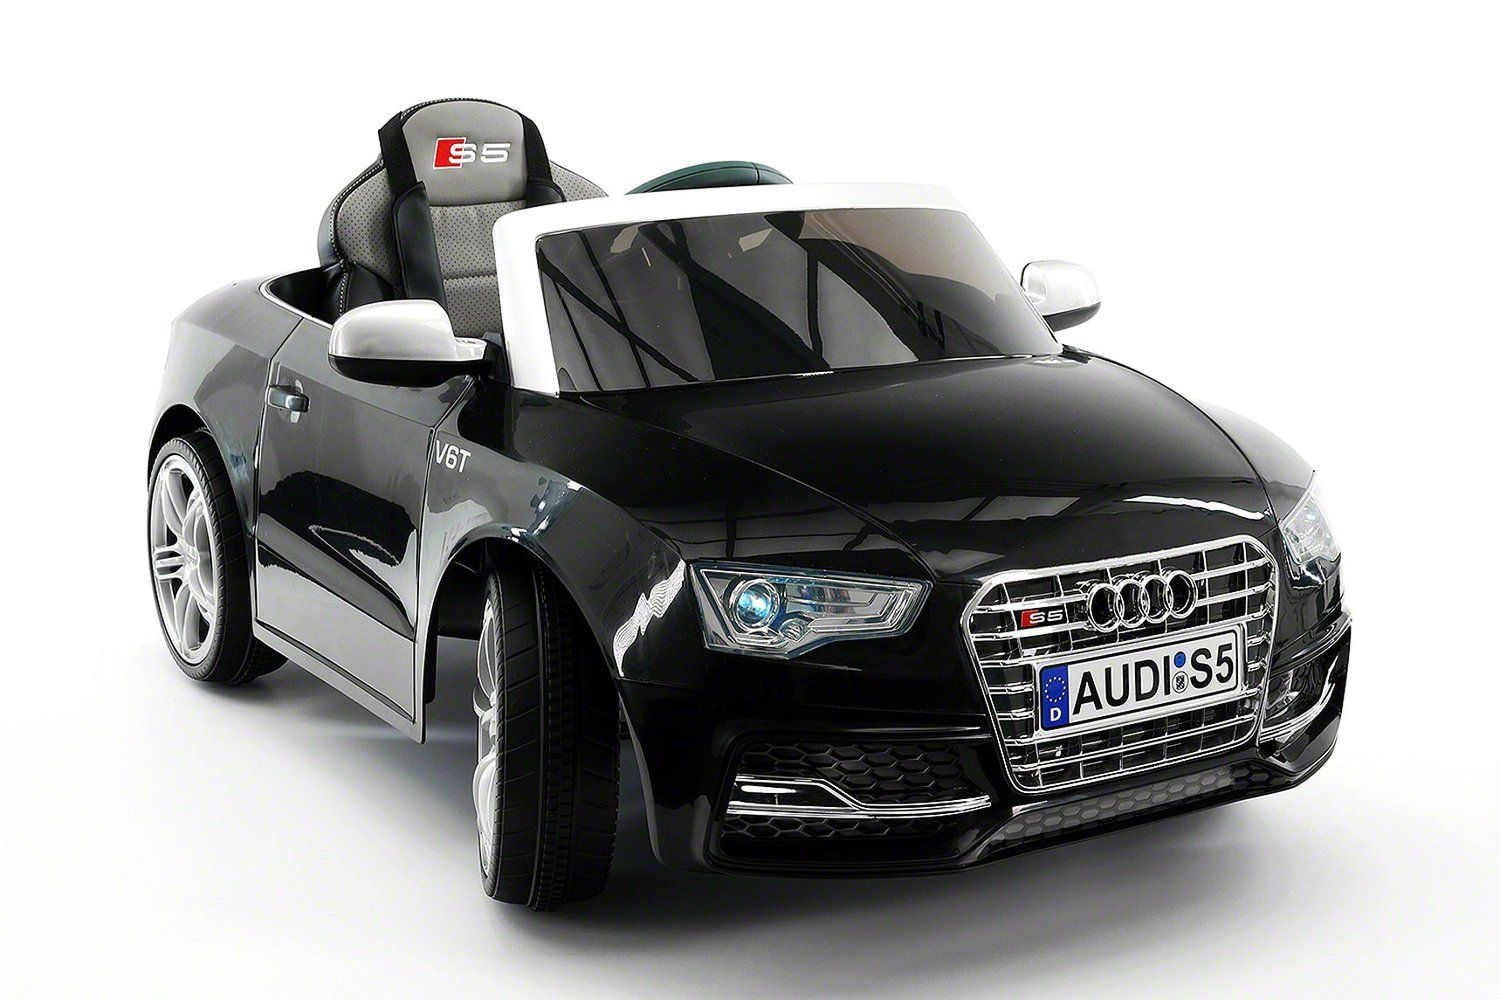 Luxury Cars At Alamo Luxury Cars Around 30k Best Audi S5 Toy Cars For Kids Cool Sports Cars